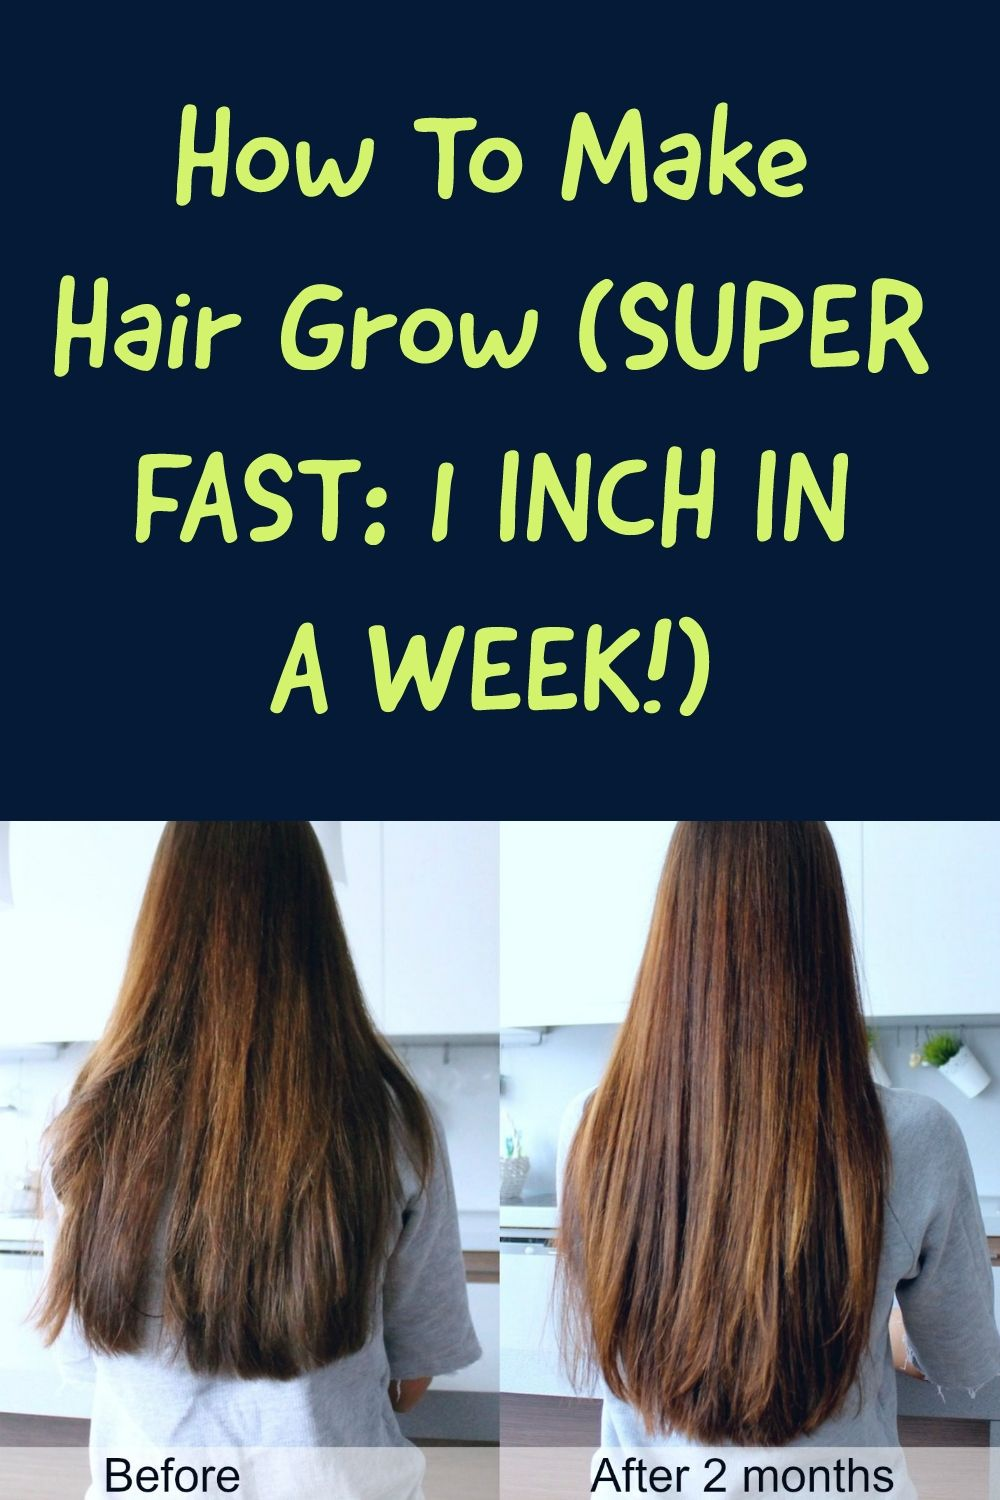 How To Make Hair Grow Super Fast 1 Inch In A Week Make Hair Grow Make Hair Grow Faster Grow Hair